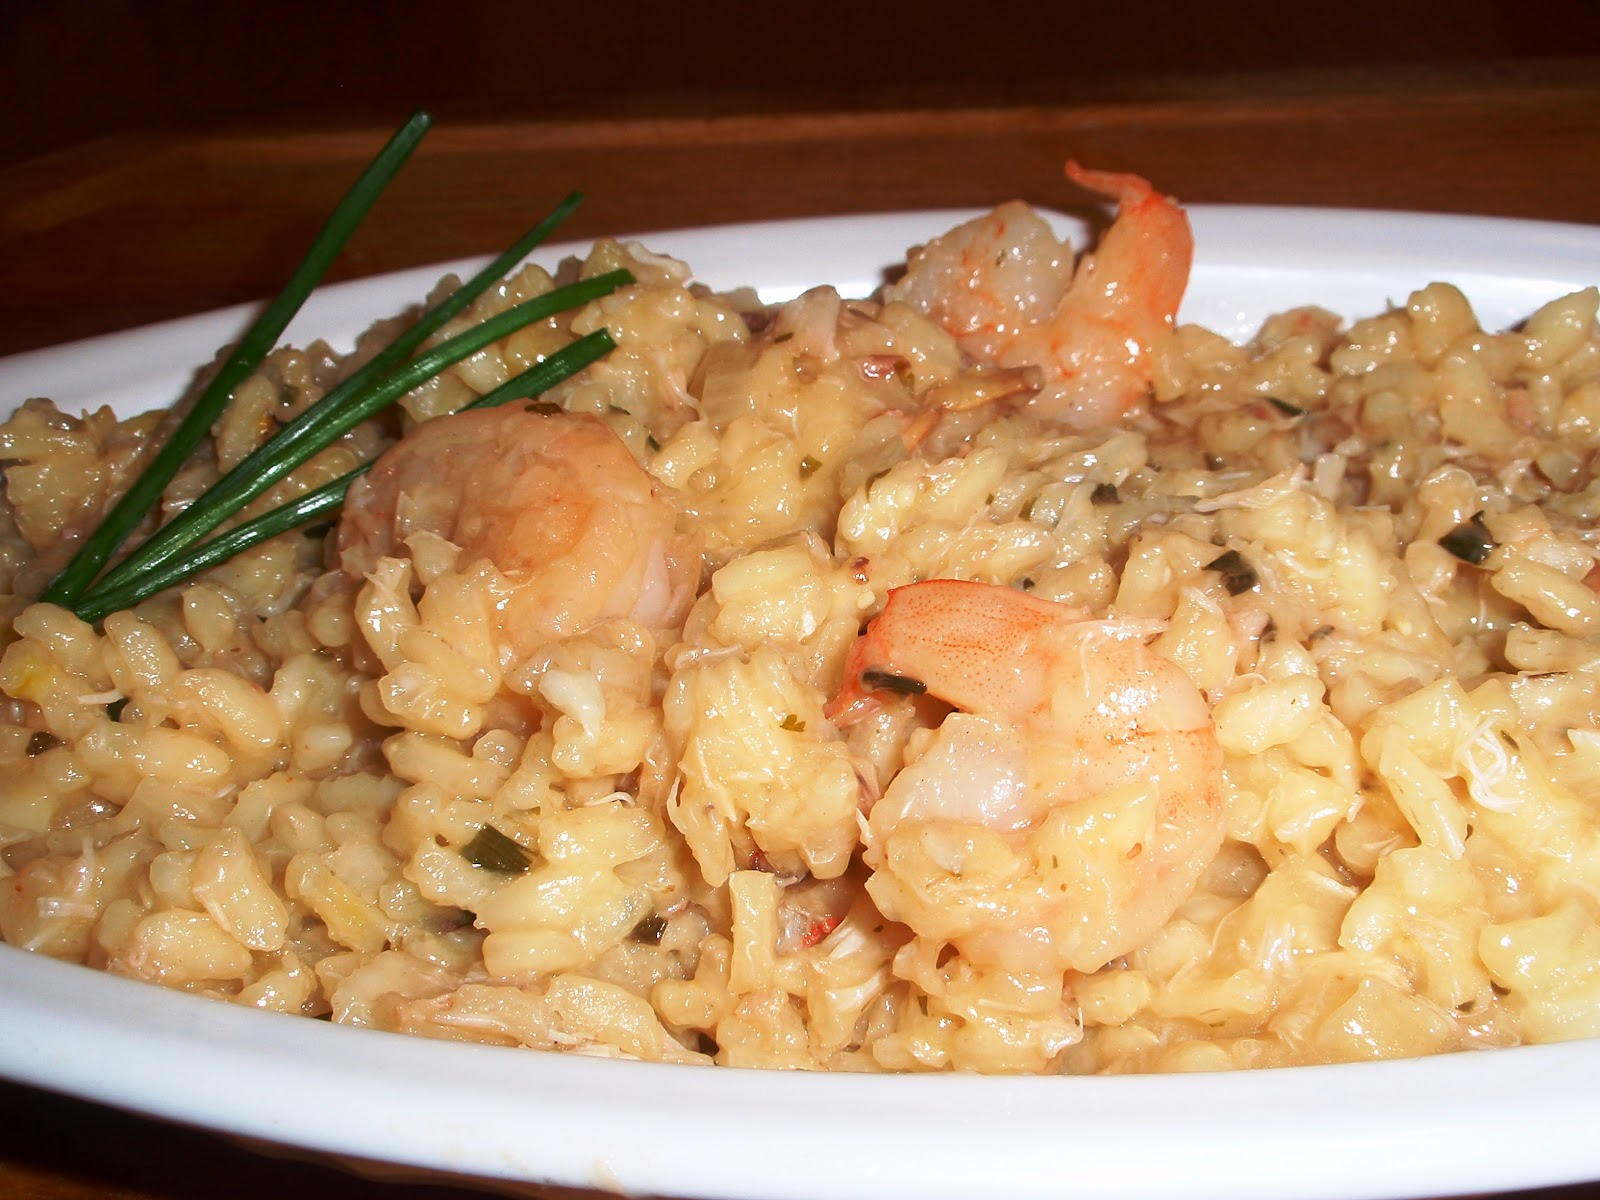 Culinary Orgasm: Crab and Shrimp Risotto with Herbs